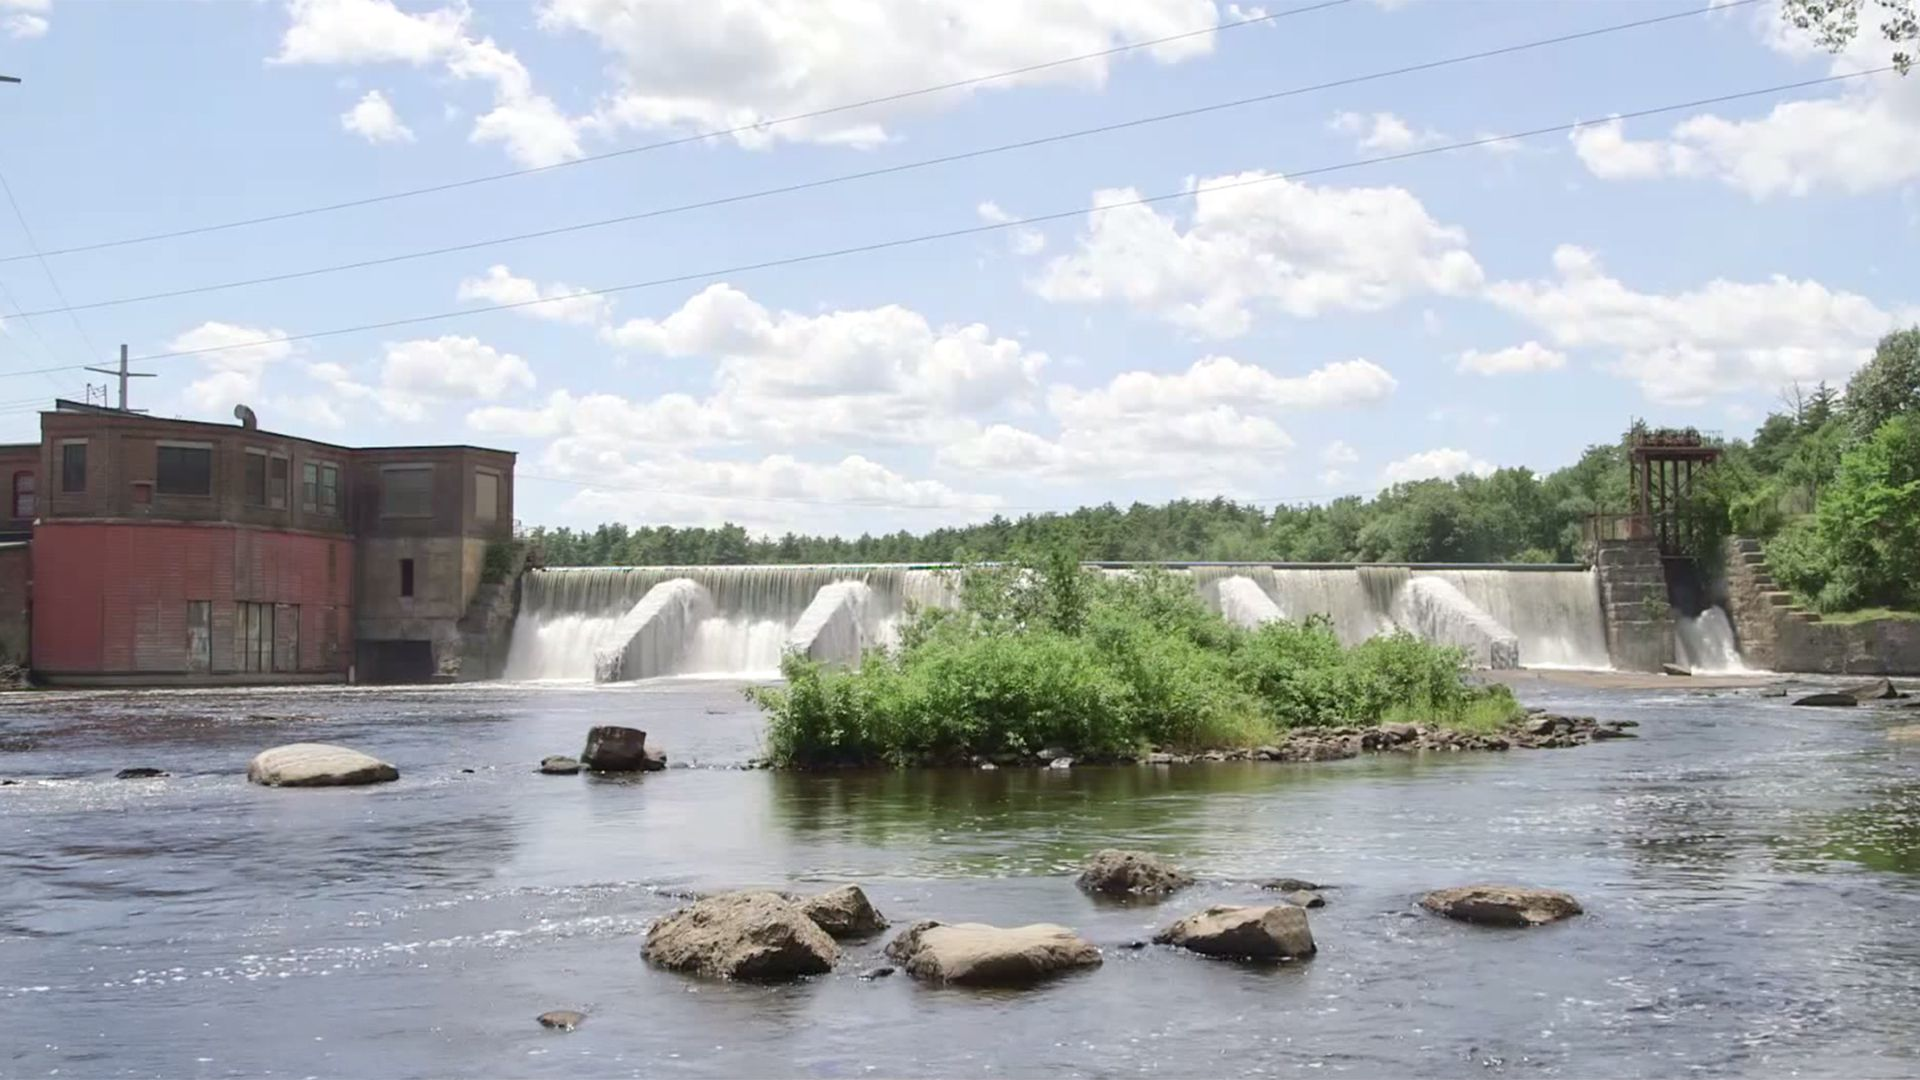 Controversy Swirls Over Dam Plans In Northern New York